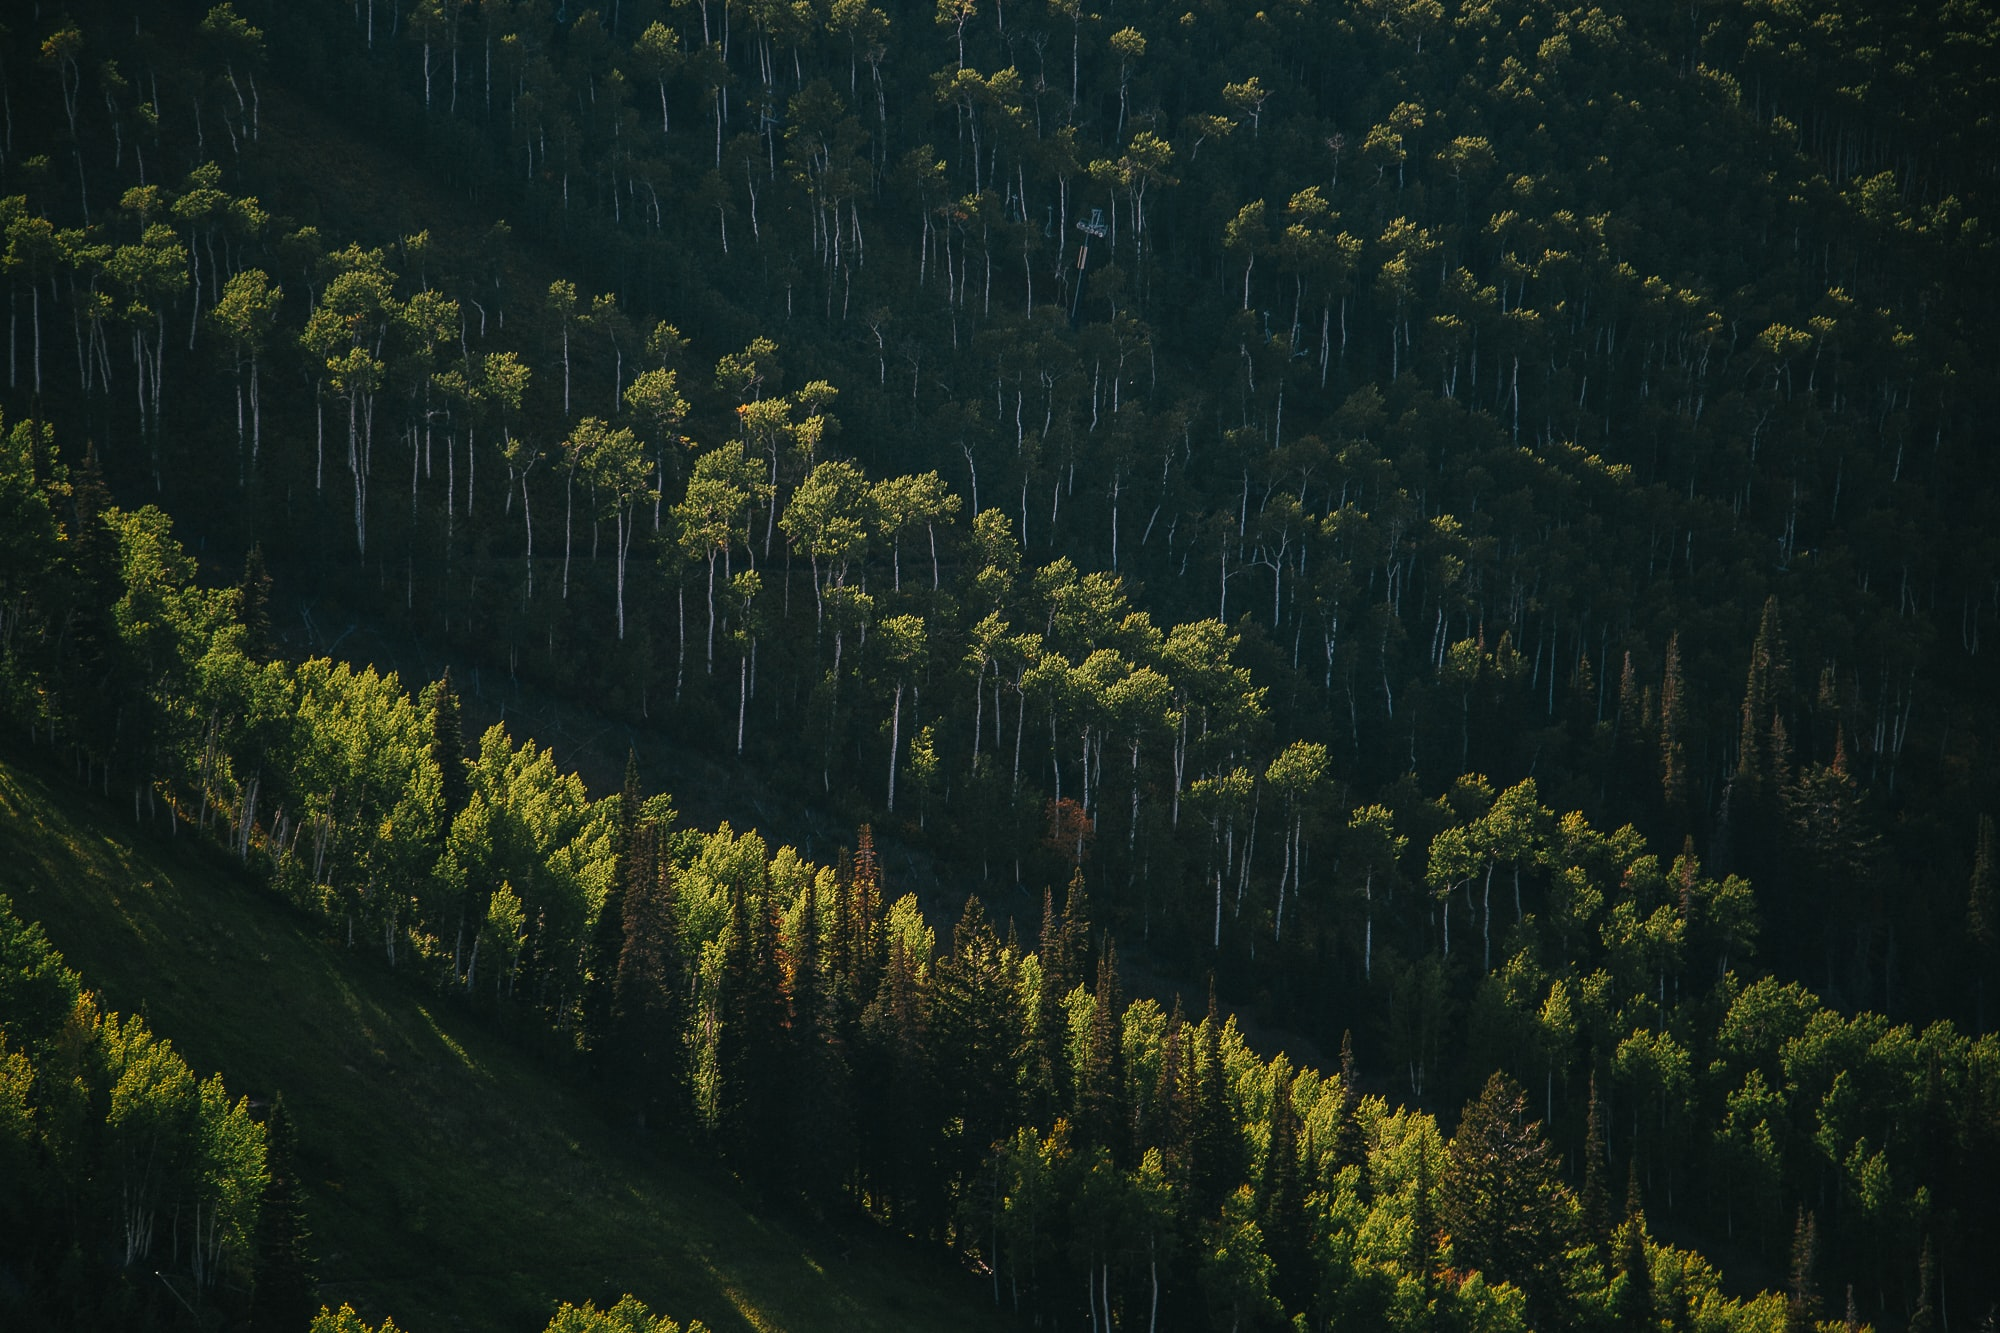 green pine trees in aerial view photography